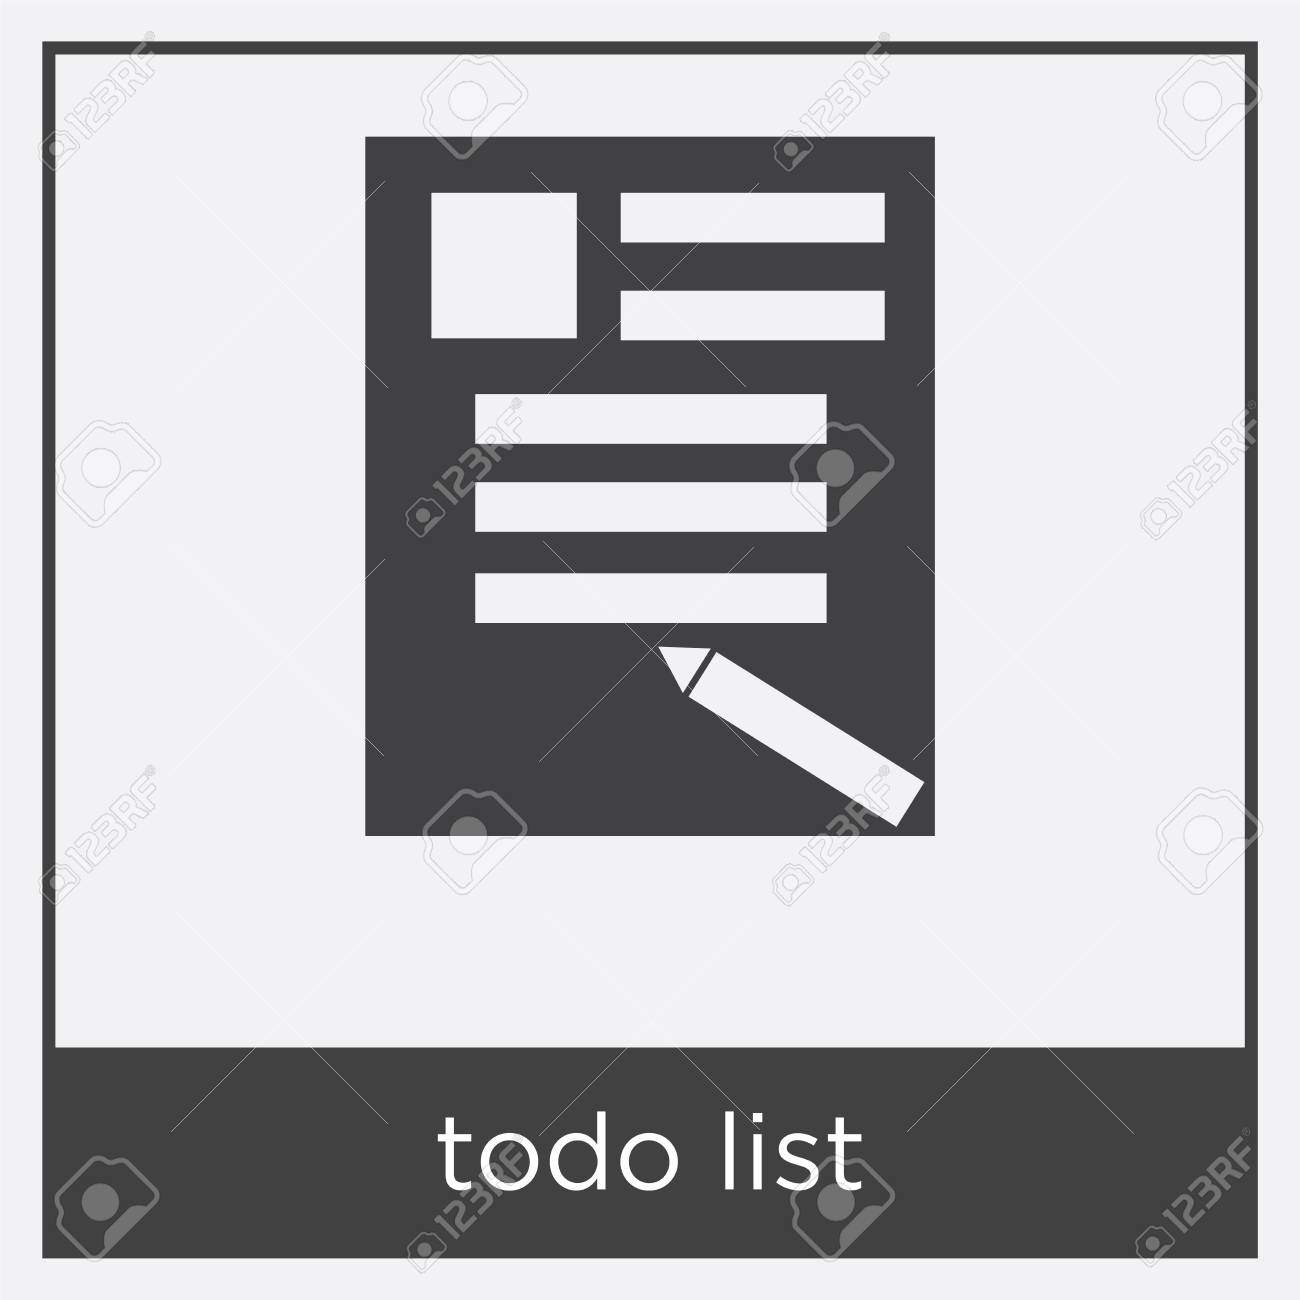 todo list icon isolated on white background with black border stock vector 100322480